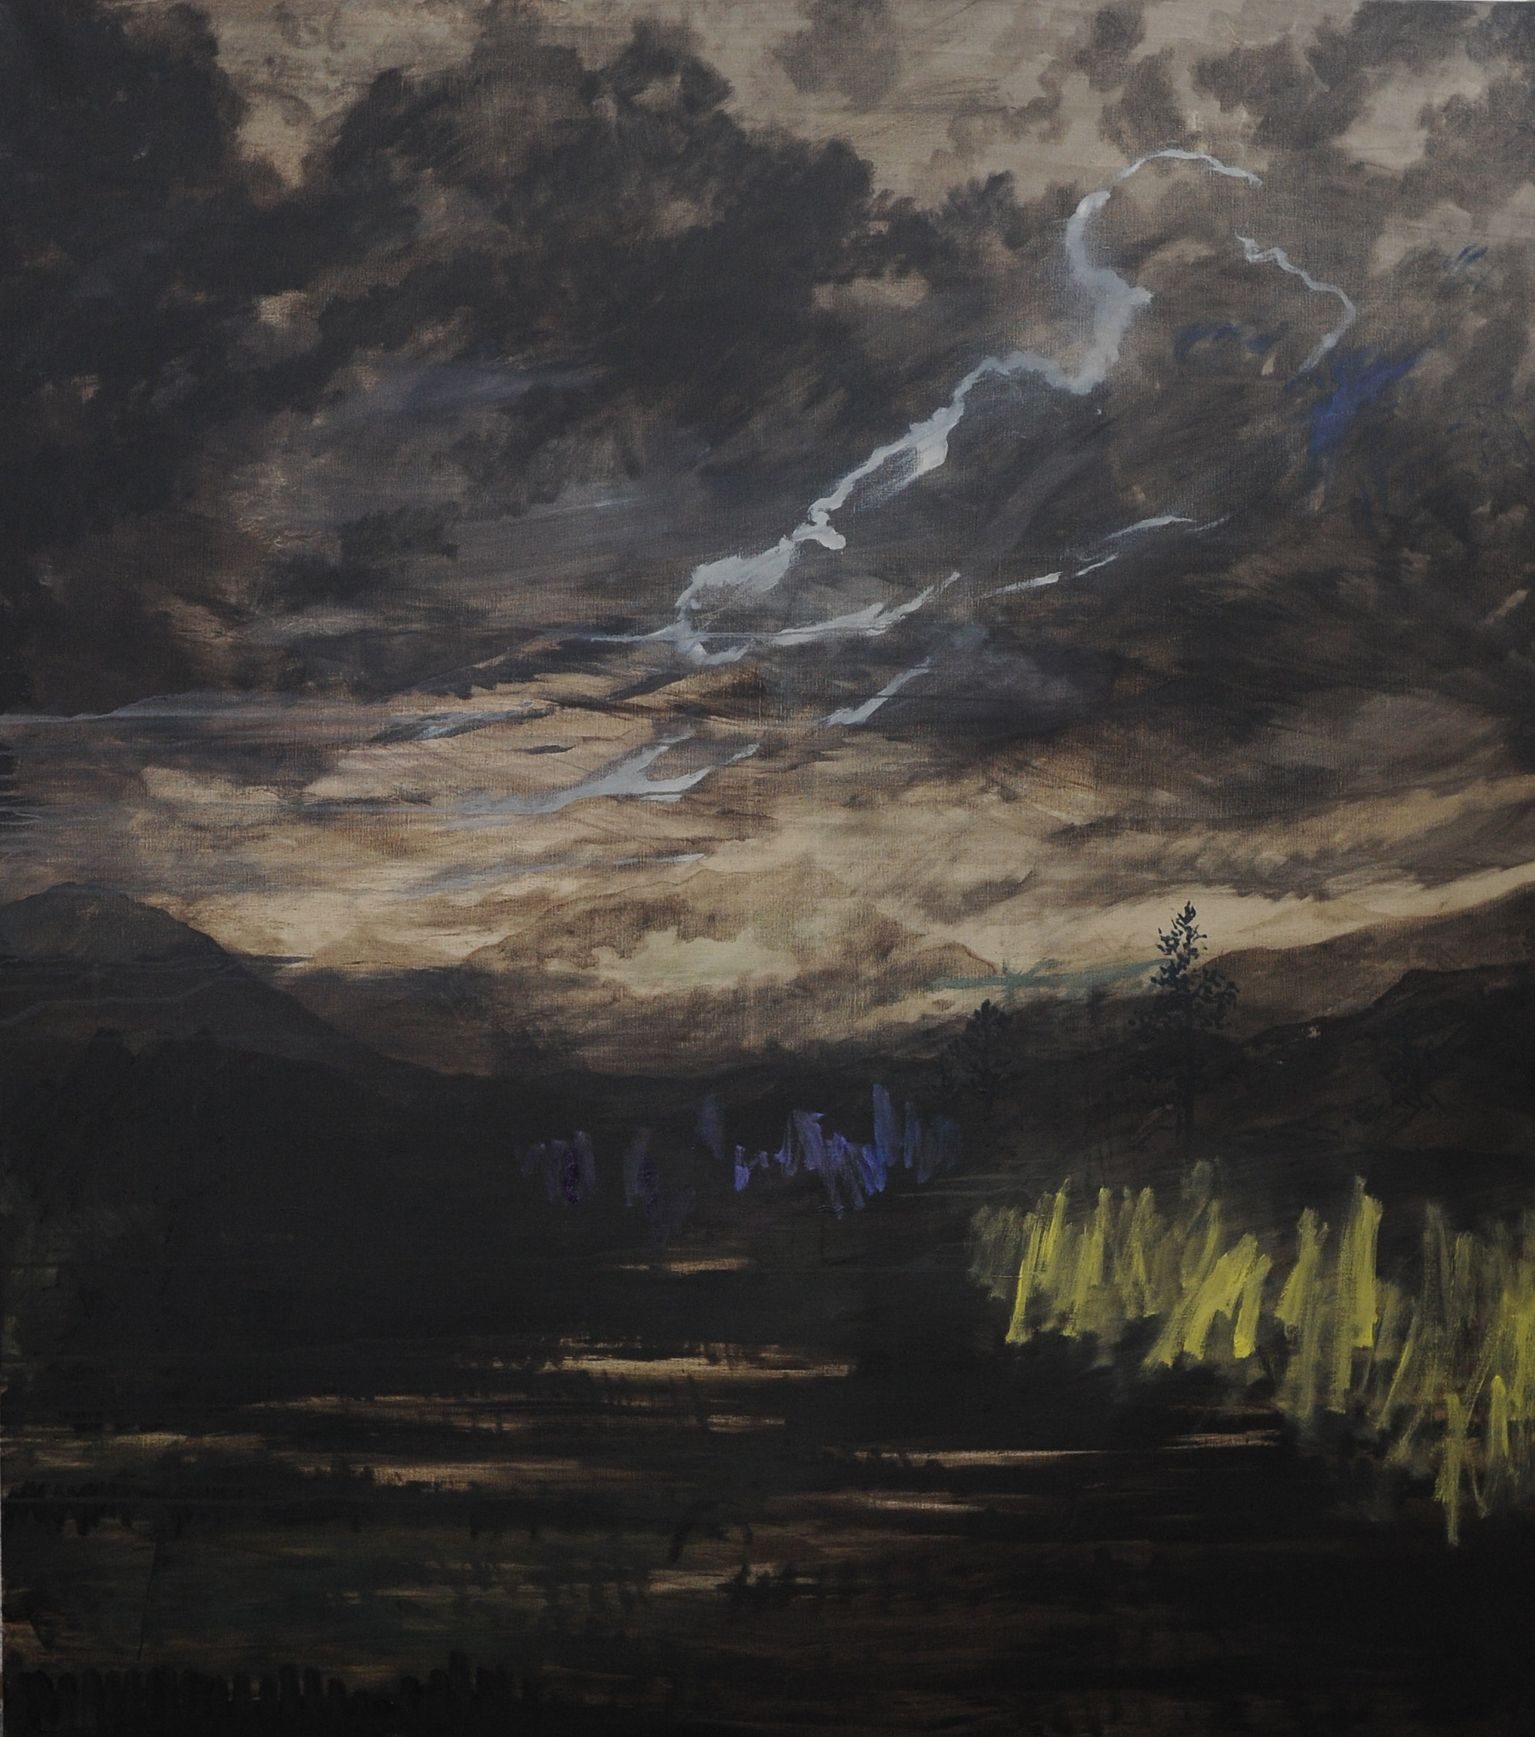 Olivier Masmonteil, Le Paysage Effacé, 2012, Acrylic and oil on canvas, 180 x 160 cm, 3, Courtesy Galerie Dukan